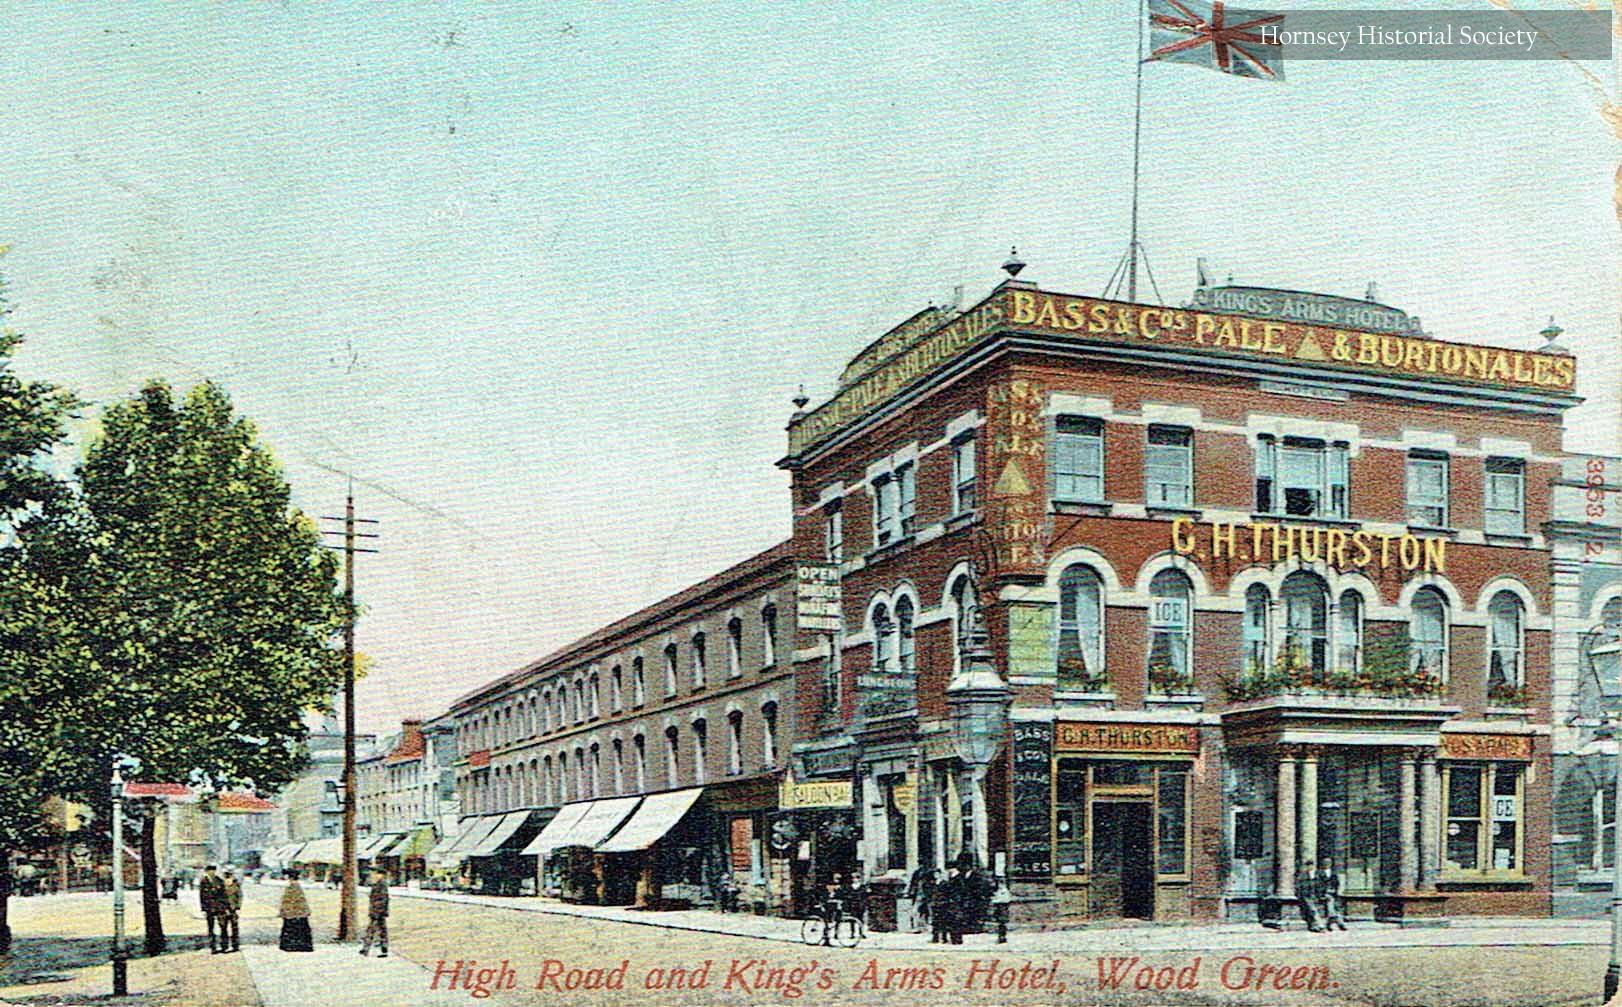 The Kings Arms Hotel, High Road